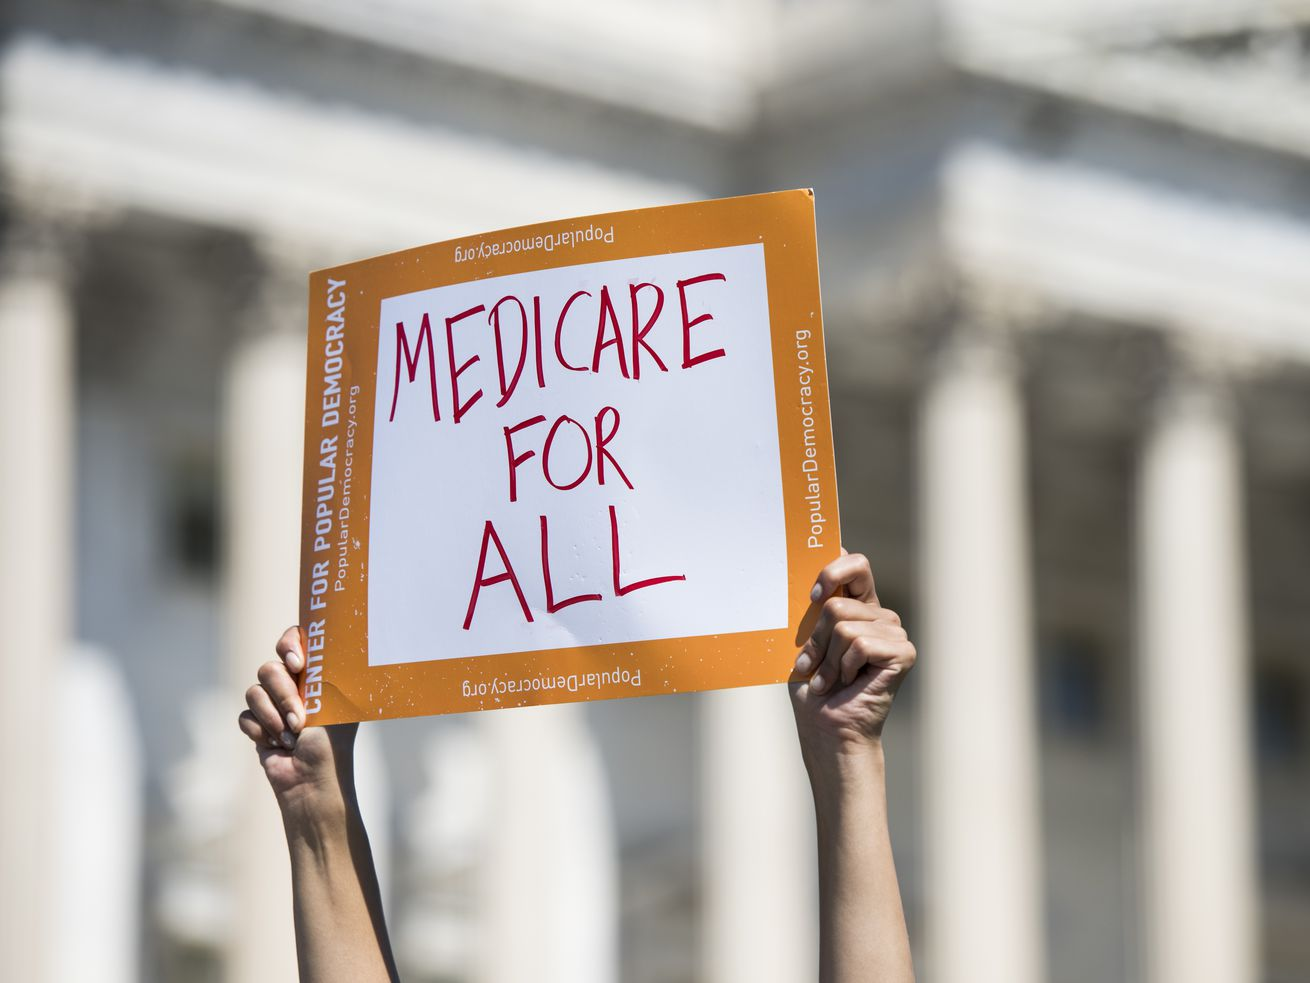 Progressive Democrats of America holds a news conference to announce the launch of a Medicare-for-all Caucus.